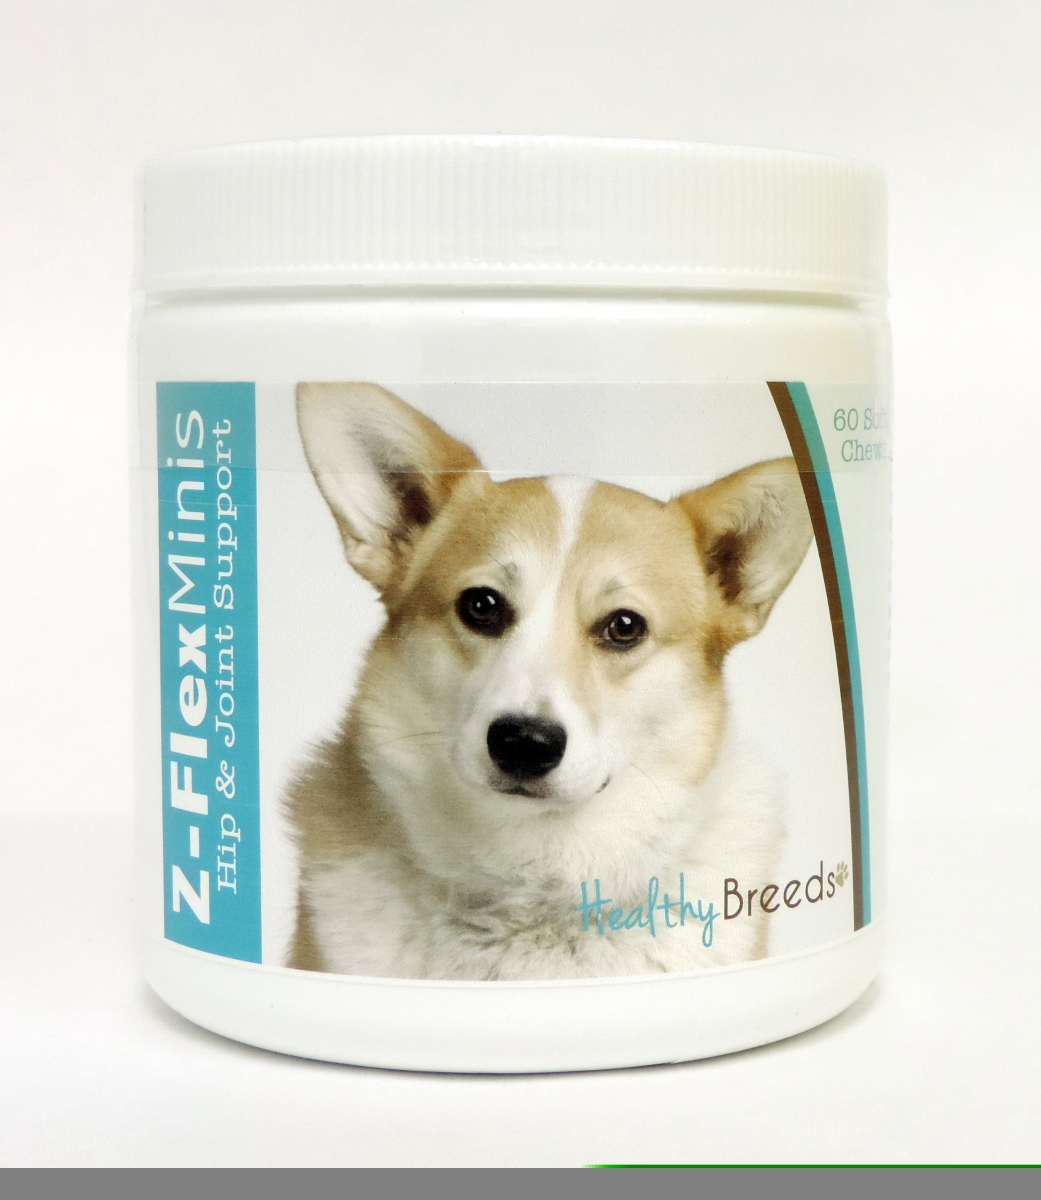 Healthy Breeds 840235104636 Cardigan Welsh Corgi Z-Flex Minis Hip & Joint Support Soft Chews 60 Count